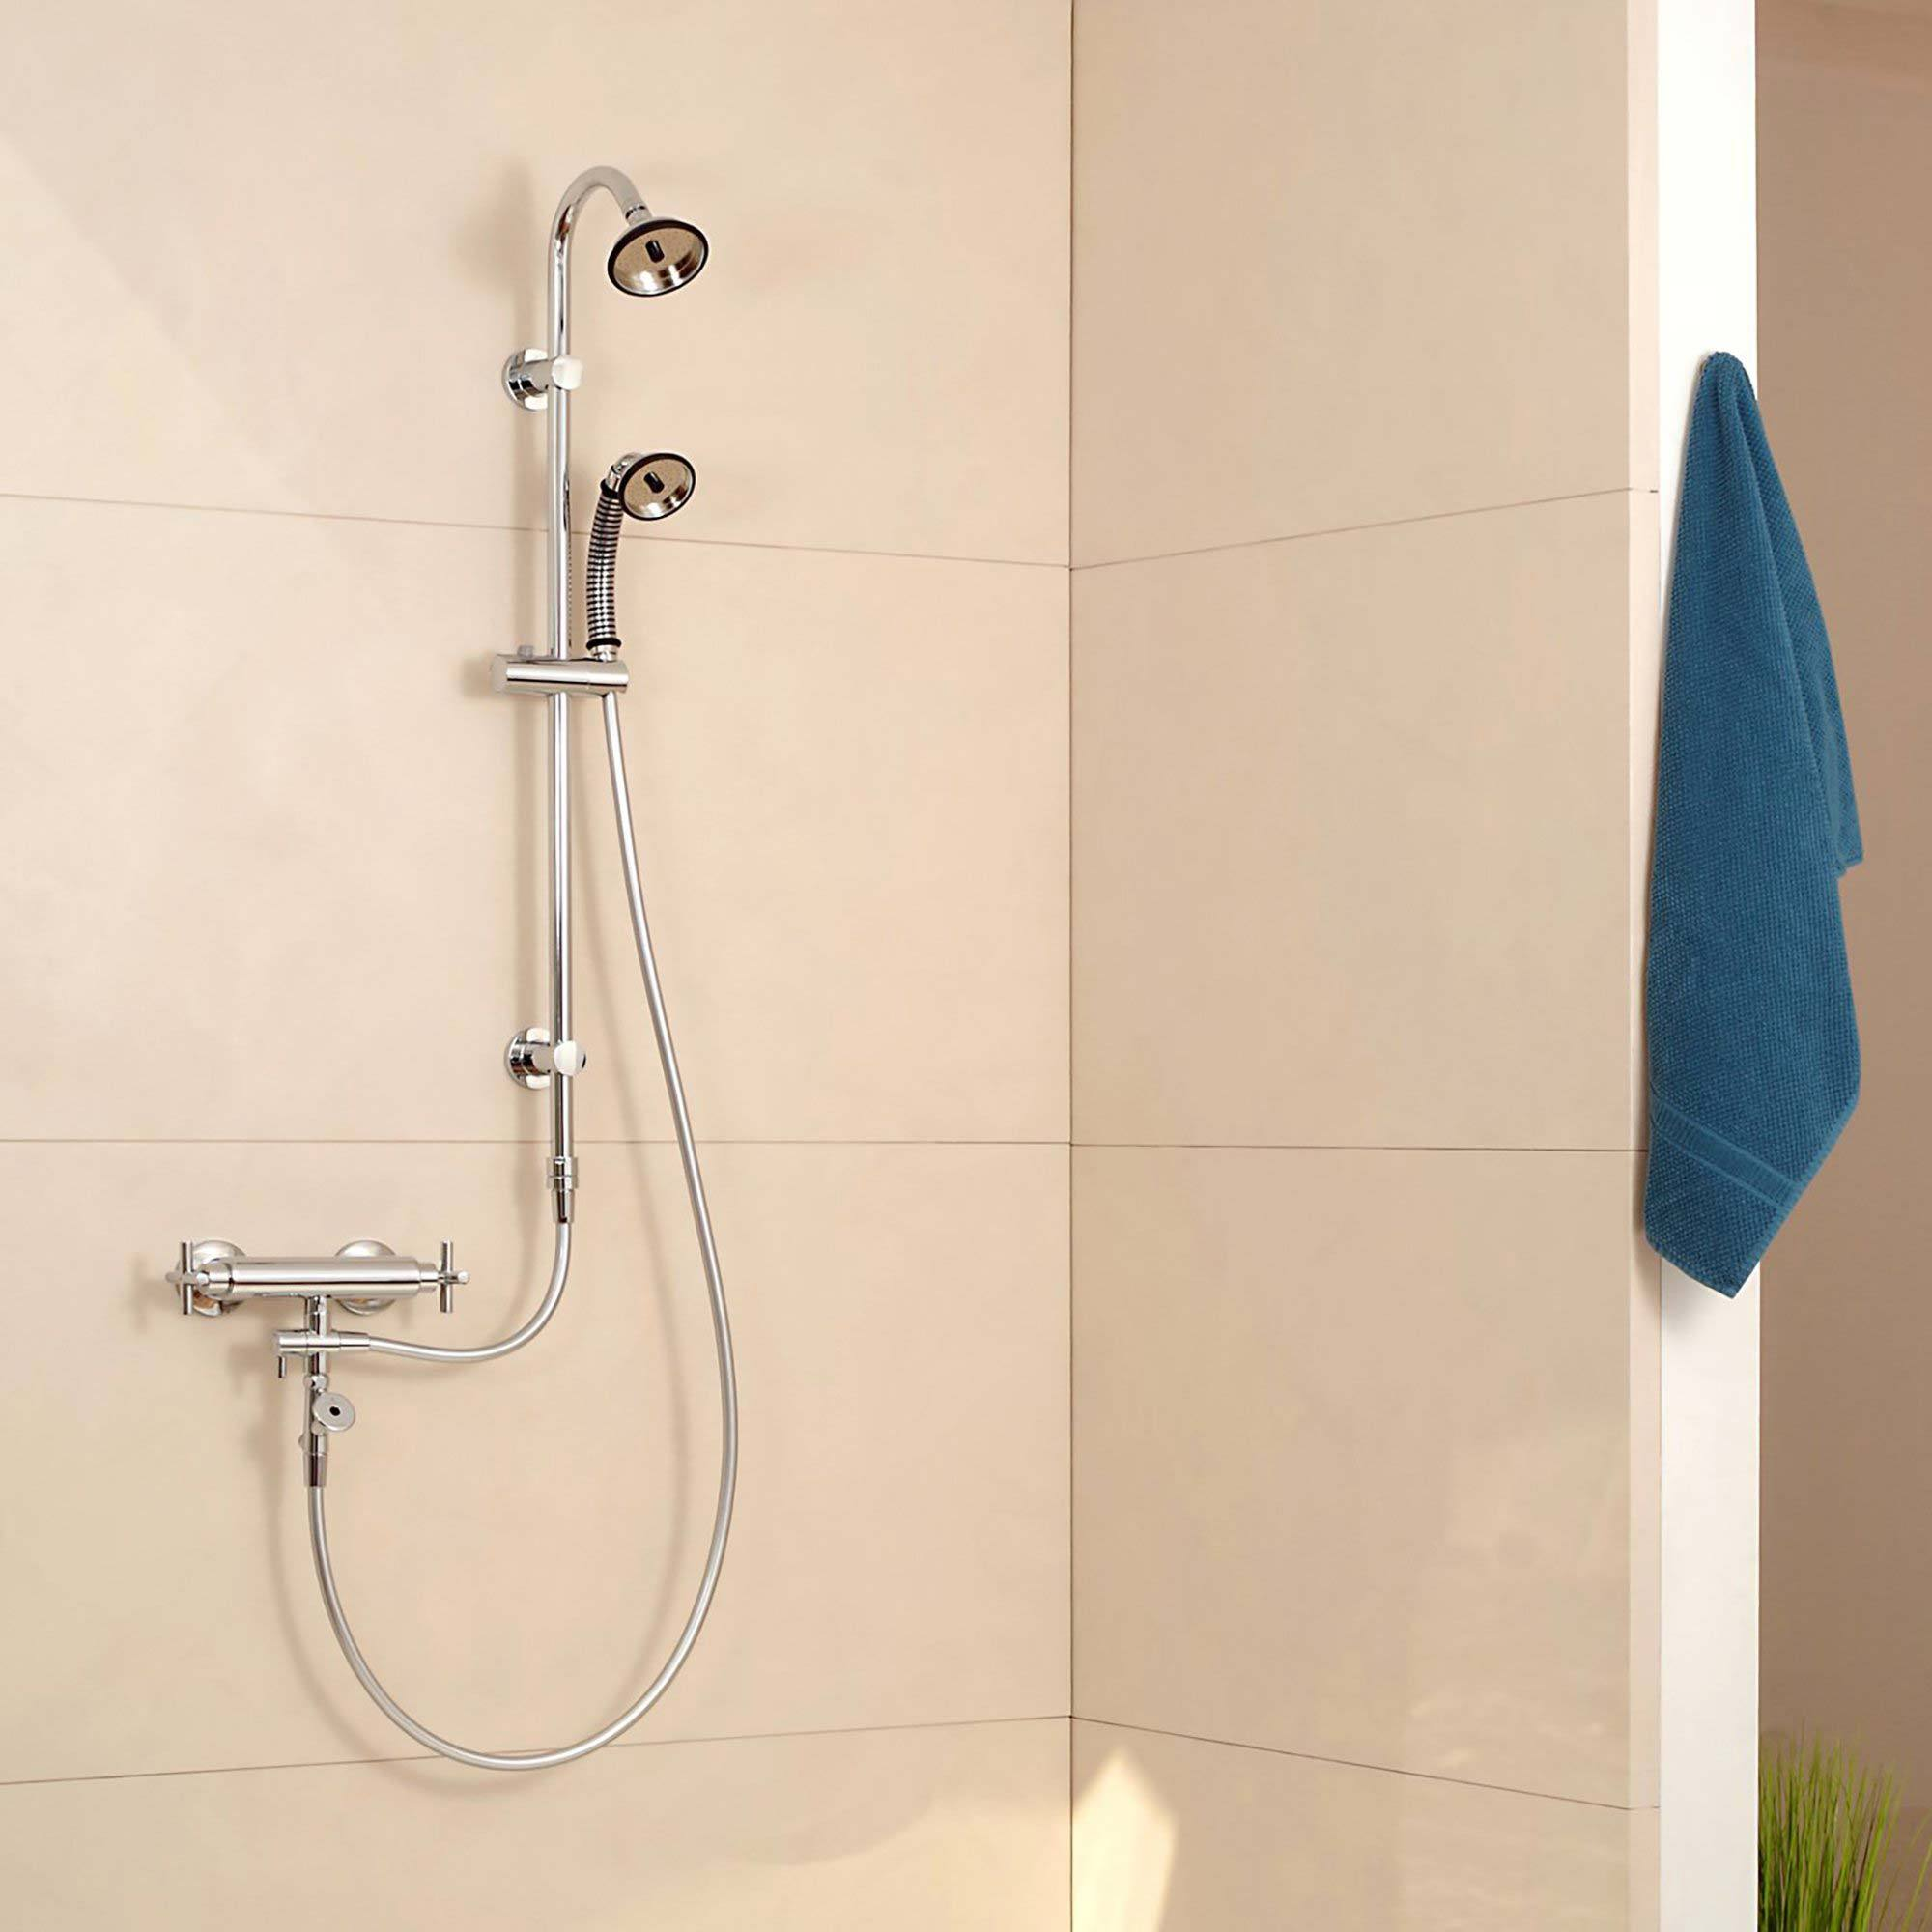 BUBBLE-RAIN® XL Shower Head & Handle Displayed in Bathroom with sold separately flex hose